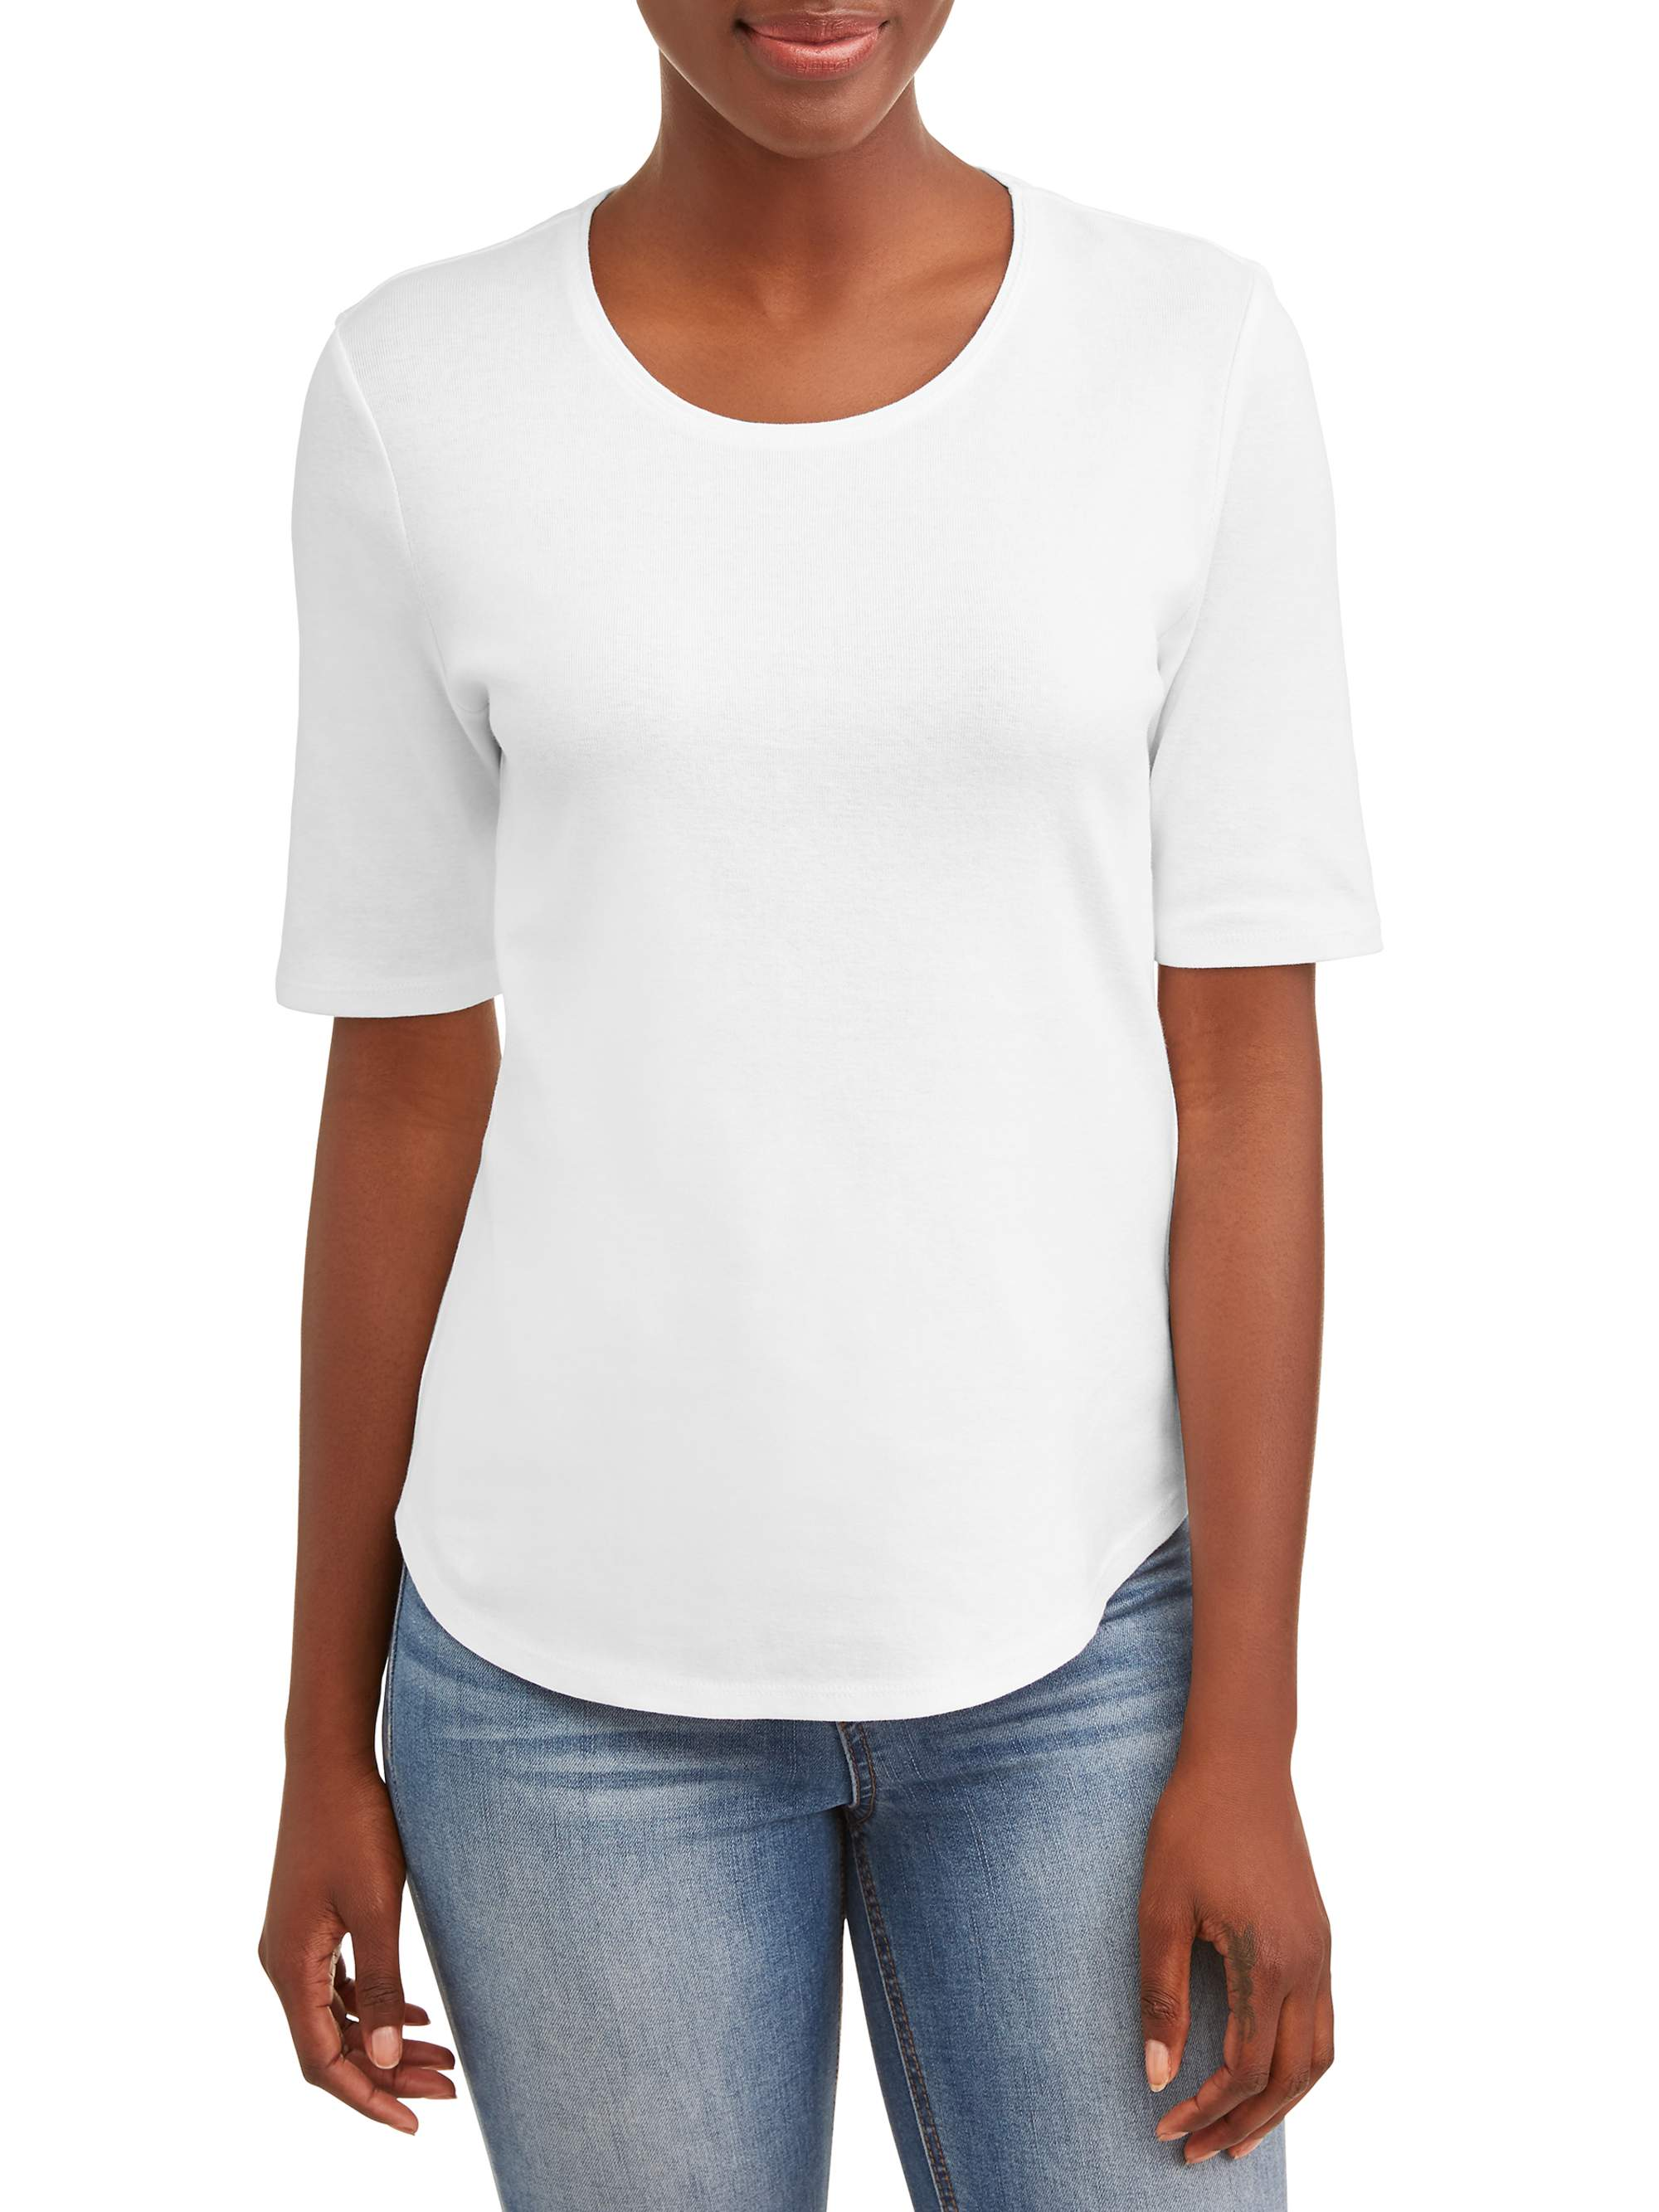 Women's Scoop Neck Elbow Sleeve Tee